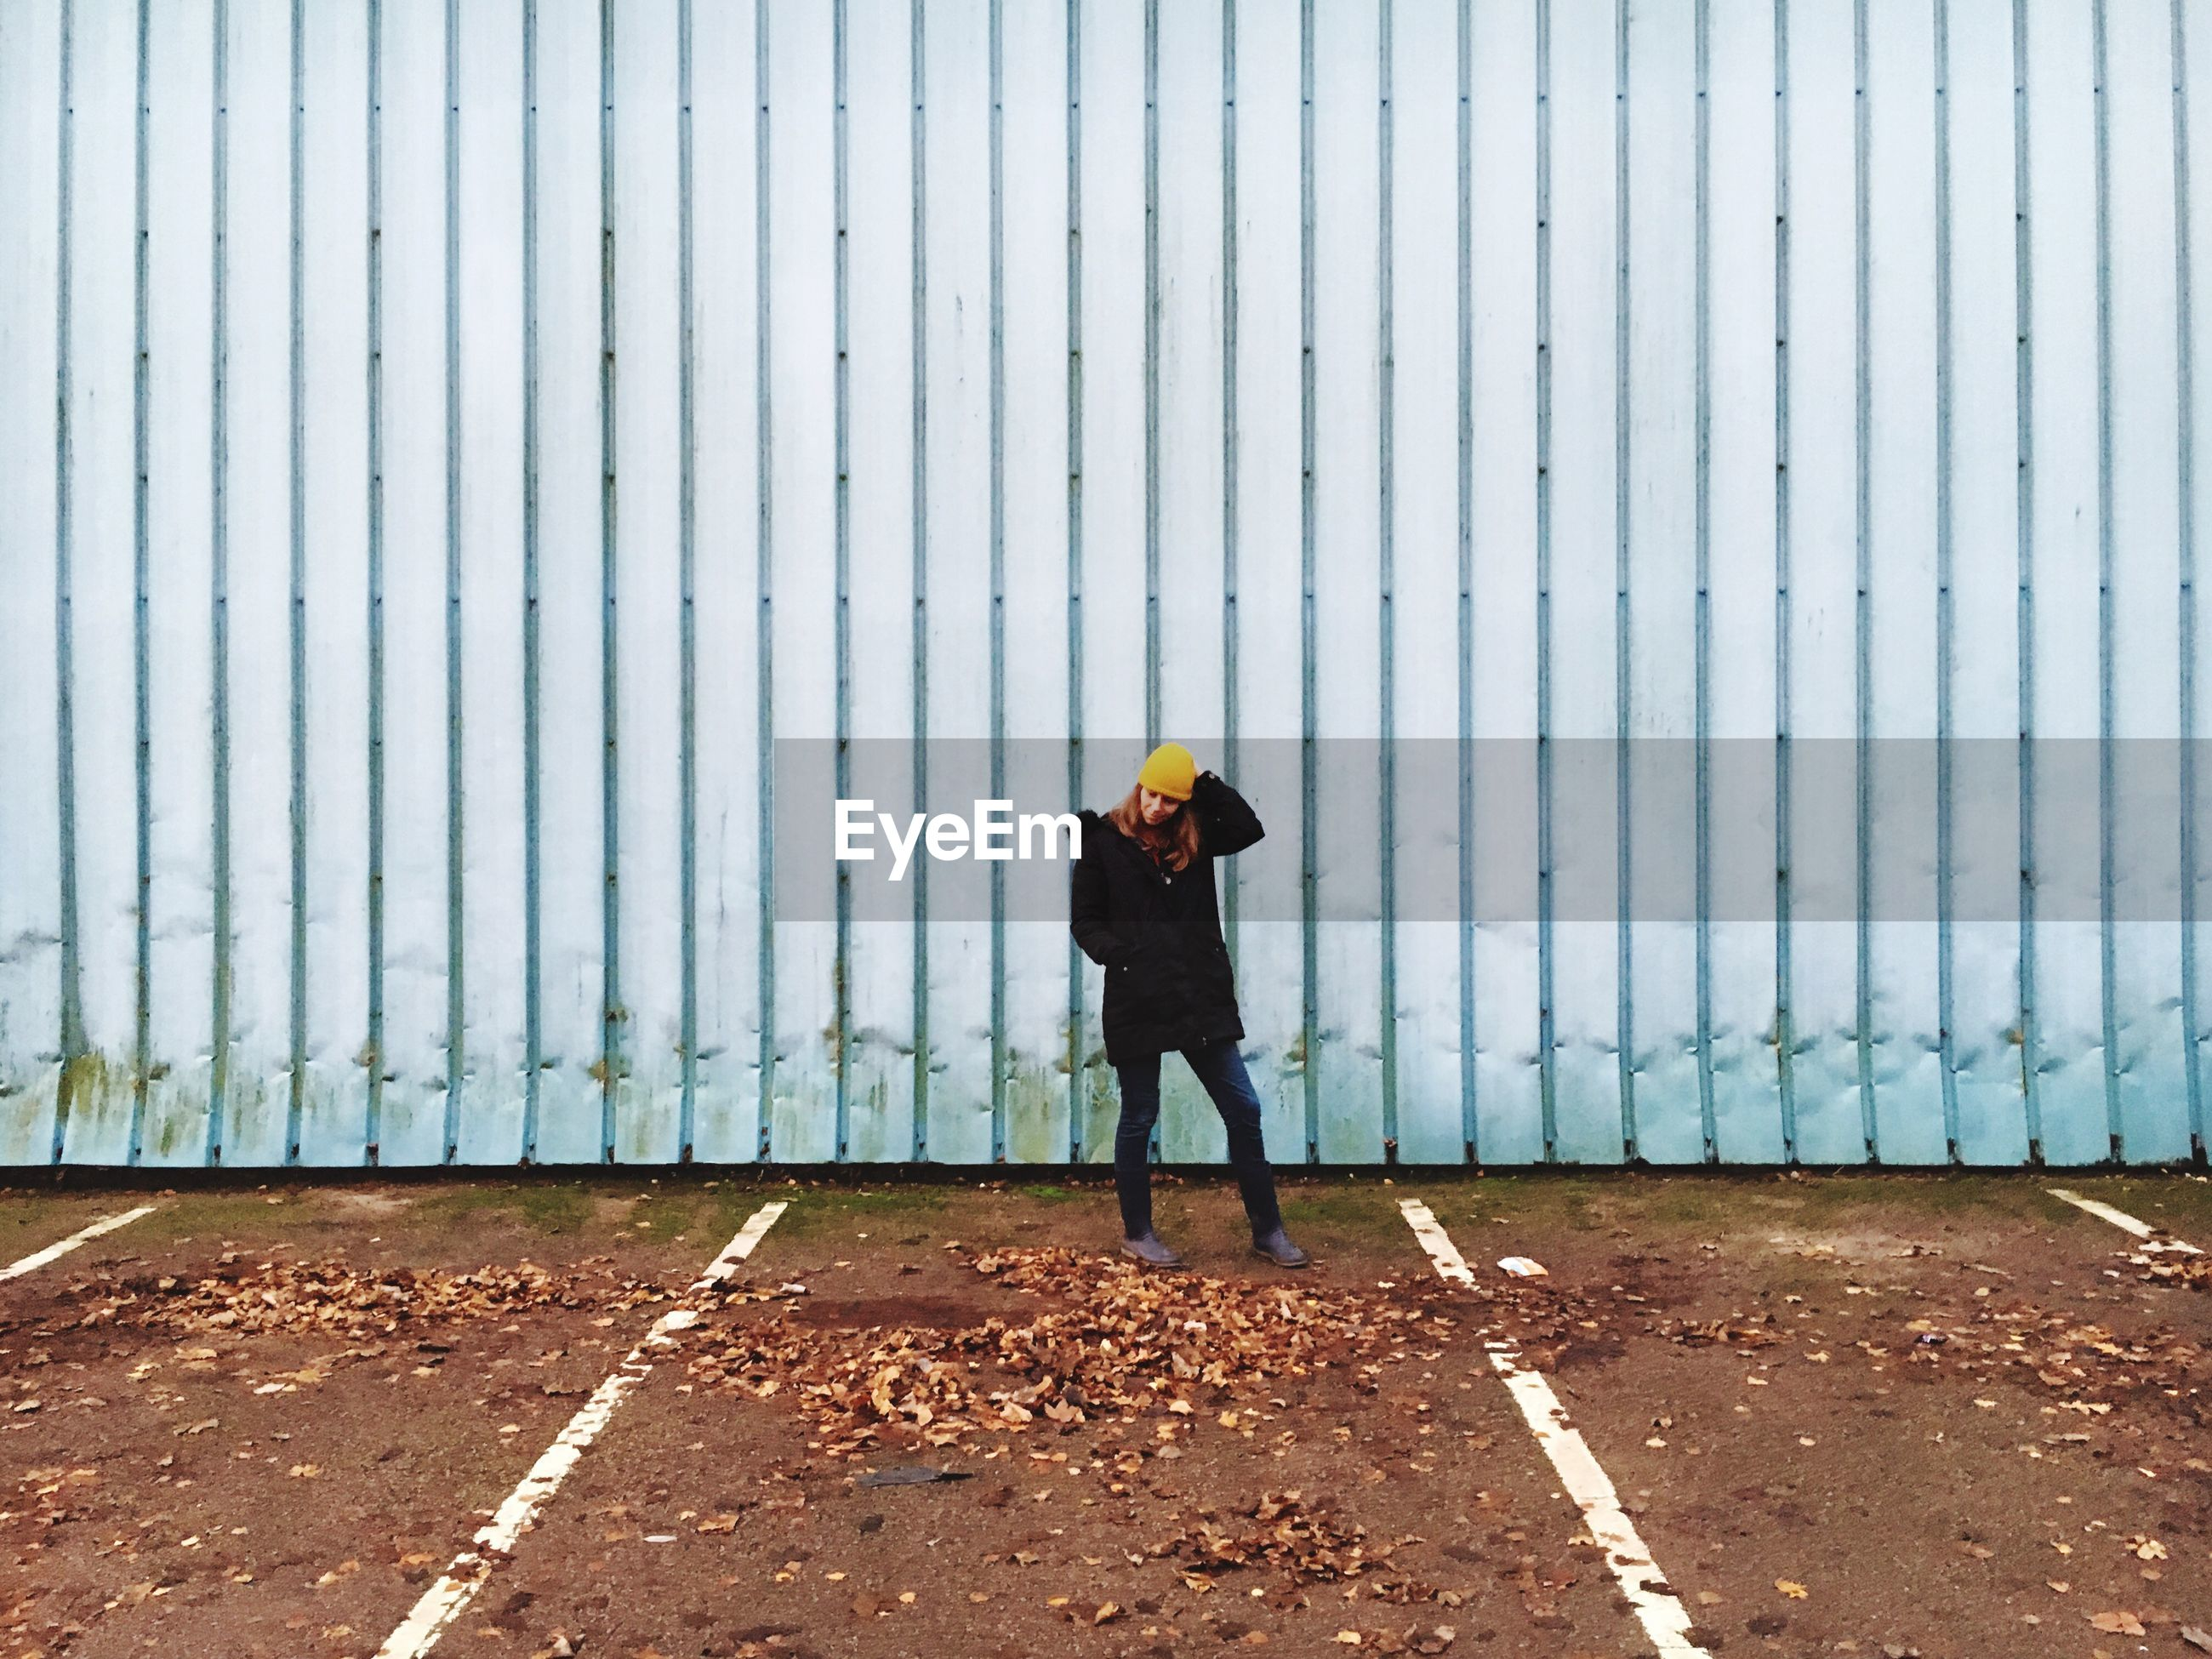 Woman standing by dry leaves fallen at parking lot against corrugated fence